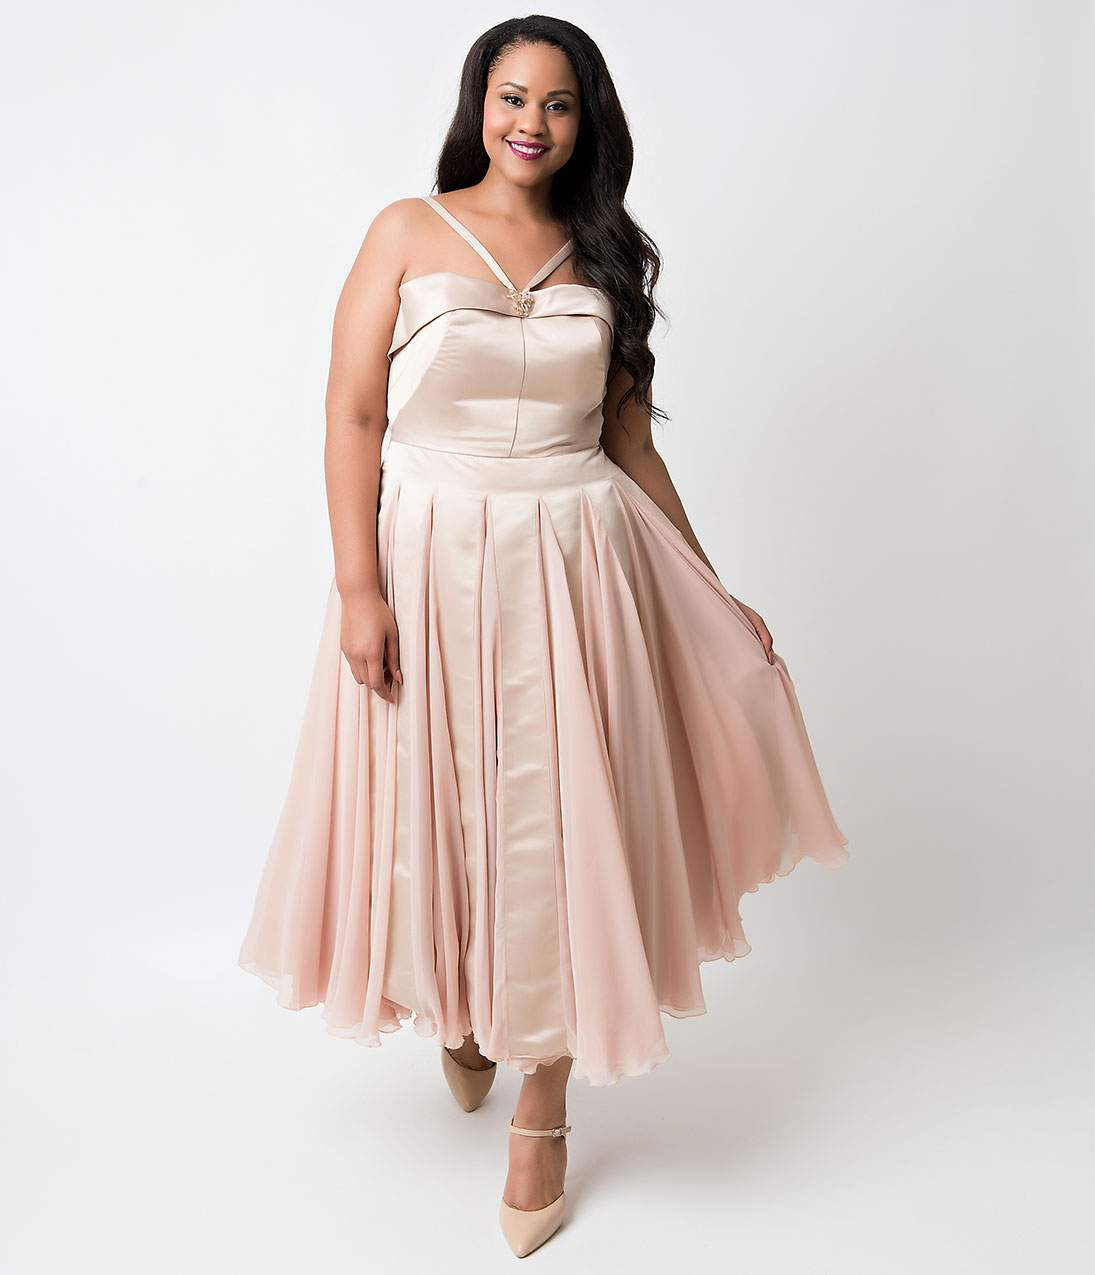 Ballerina Cocktail Dress